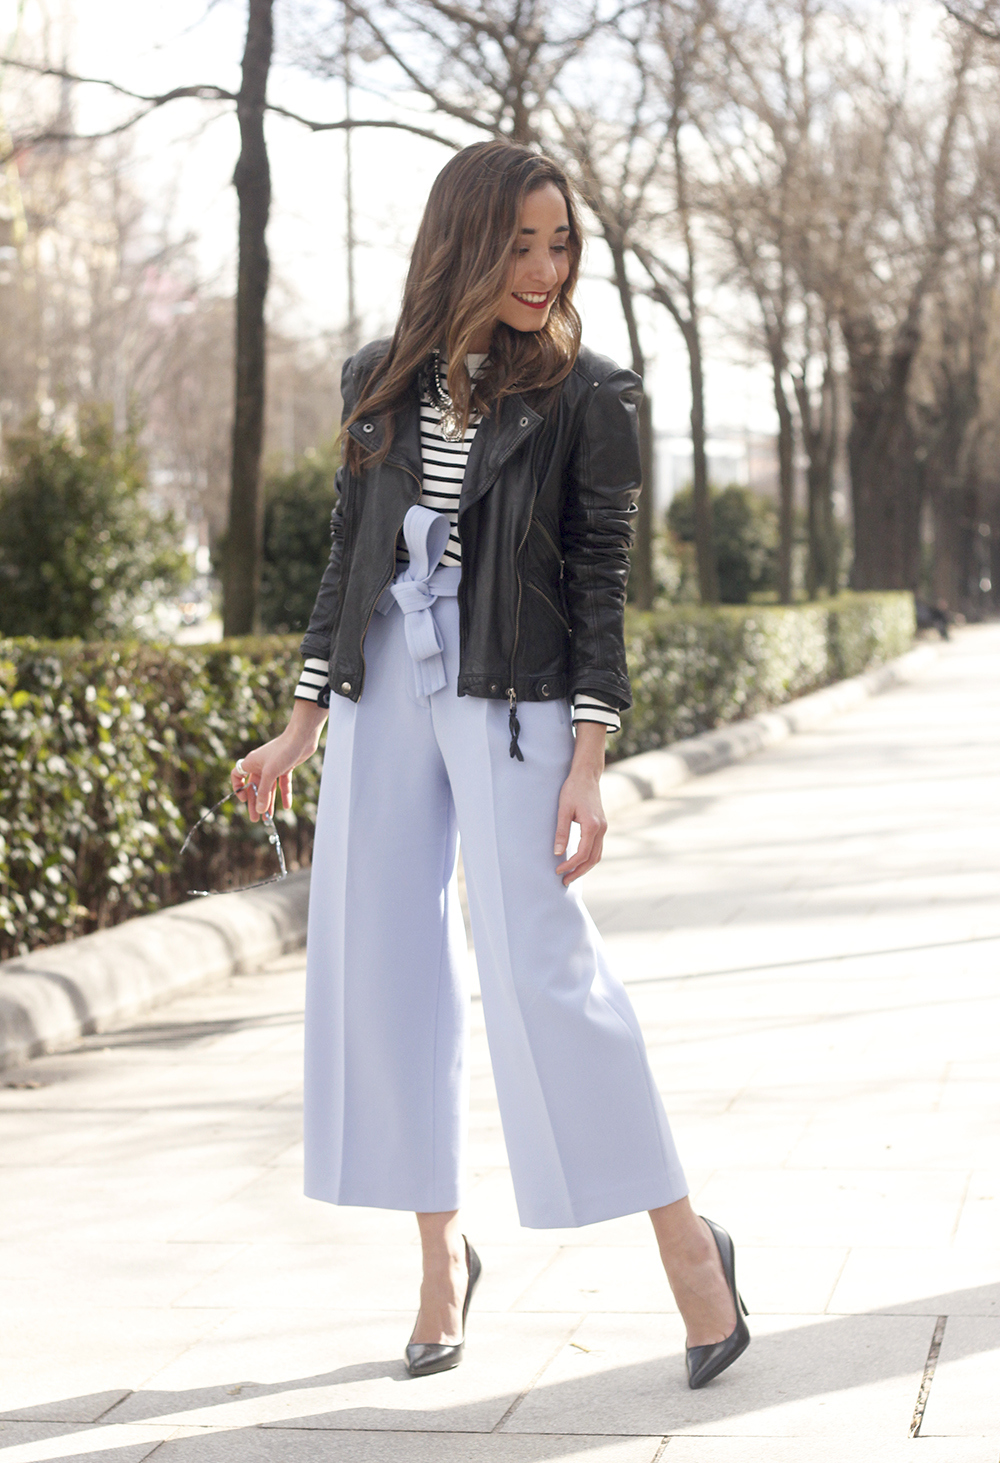 Light Blue Pallazzo pants t-shirt stripes black heels biker jacket dior so real sunglasses outfit style fashion05